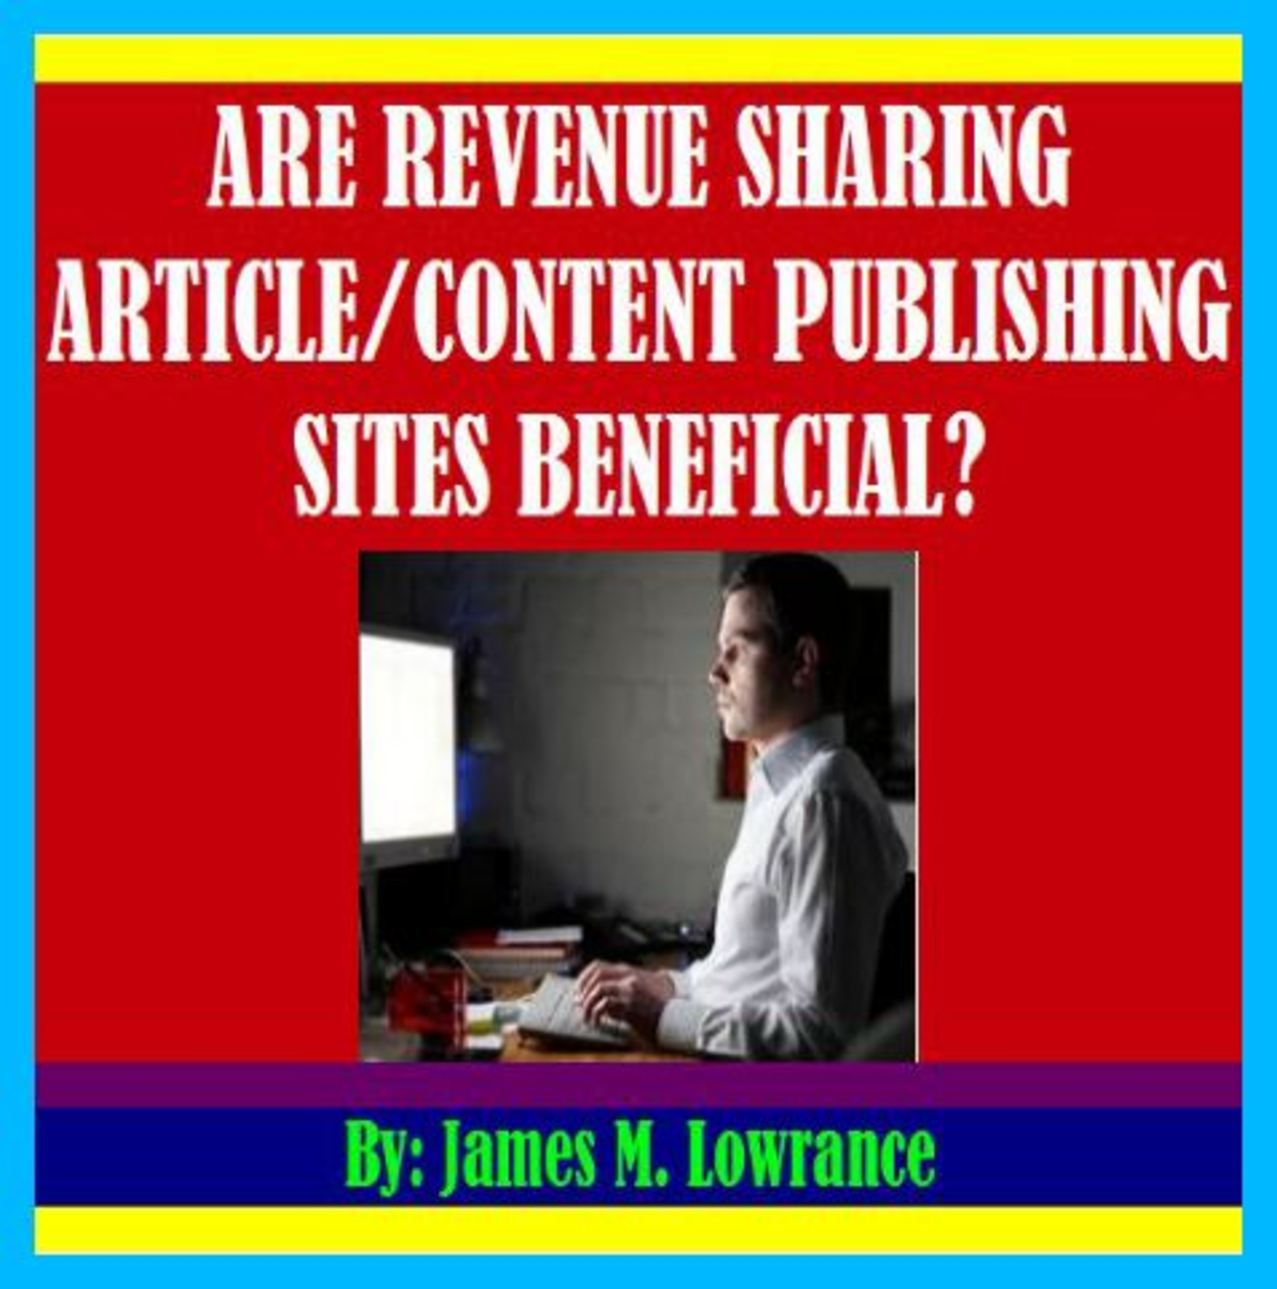 Are Revenue Sharing Article/Content Publishing Sites Beneficial? By: James Lowrance